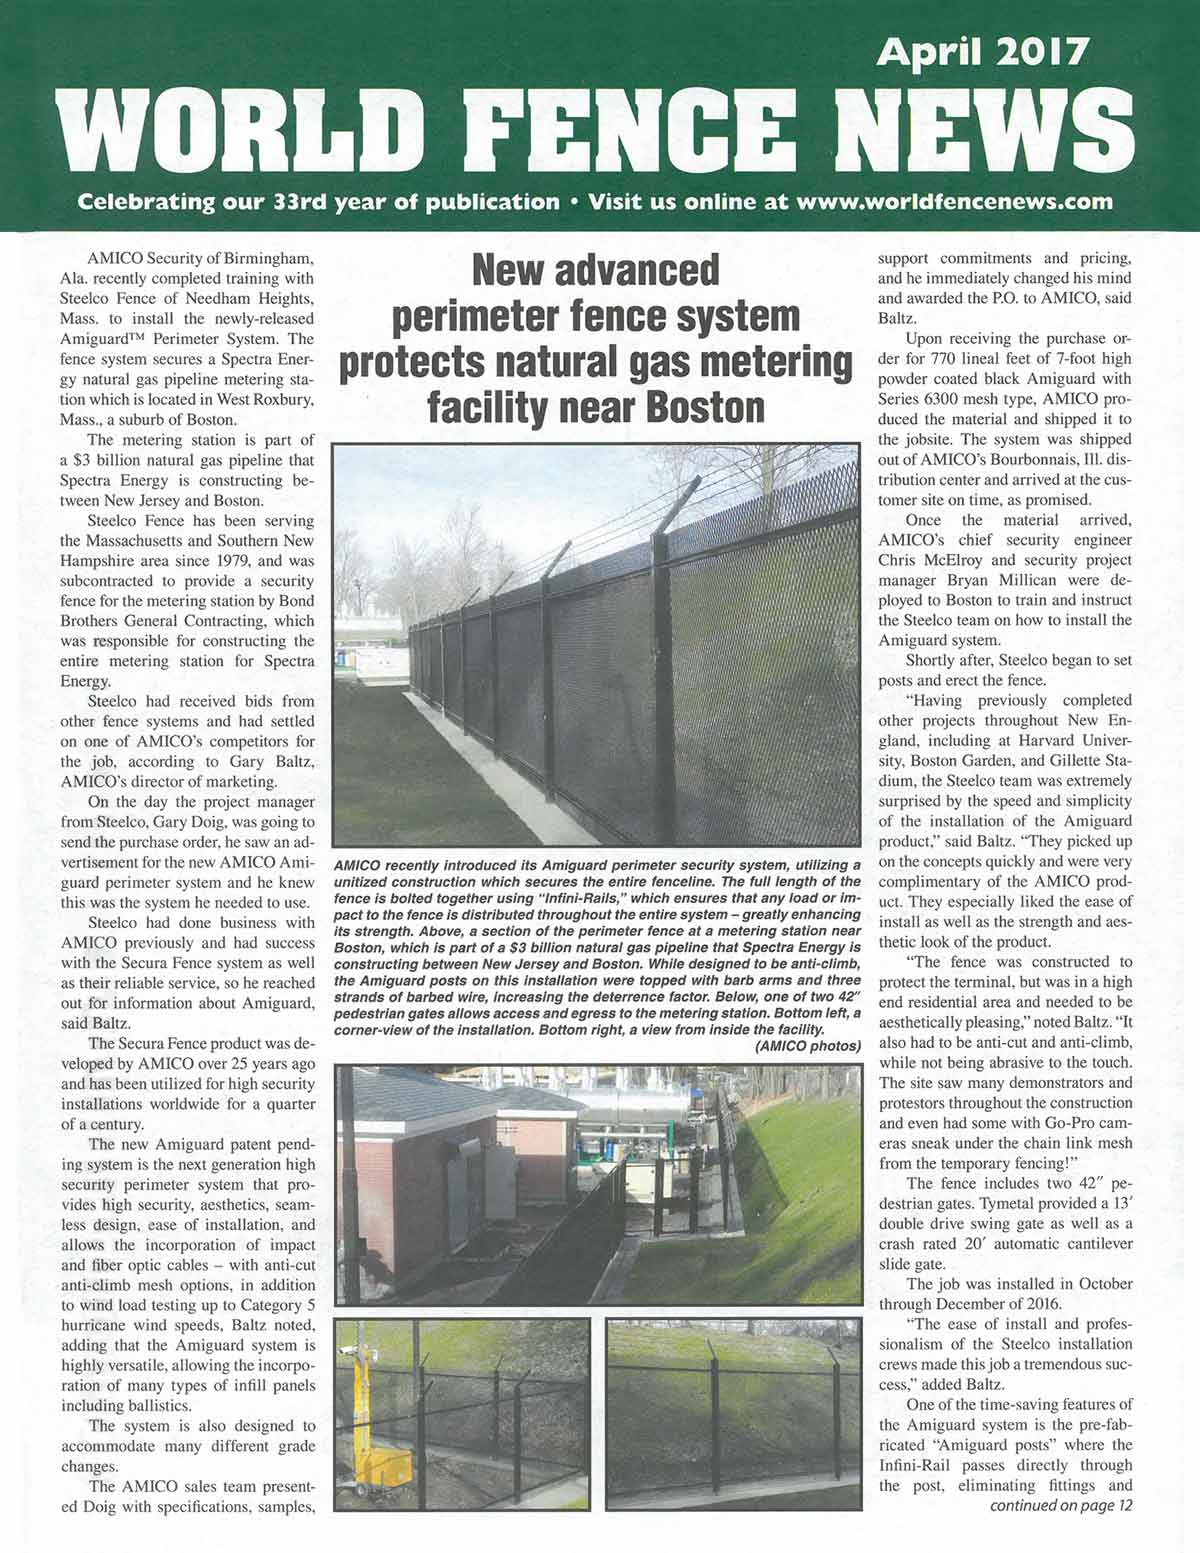 World Fence News Features AMICO Security and New Advanced Perimeter Fence System